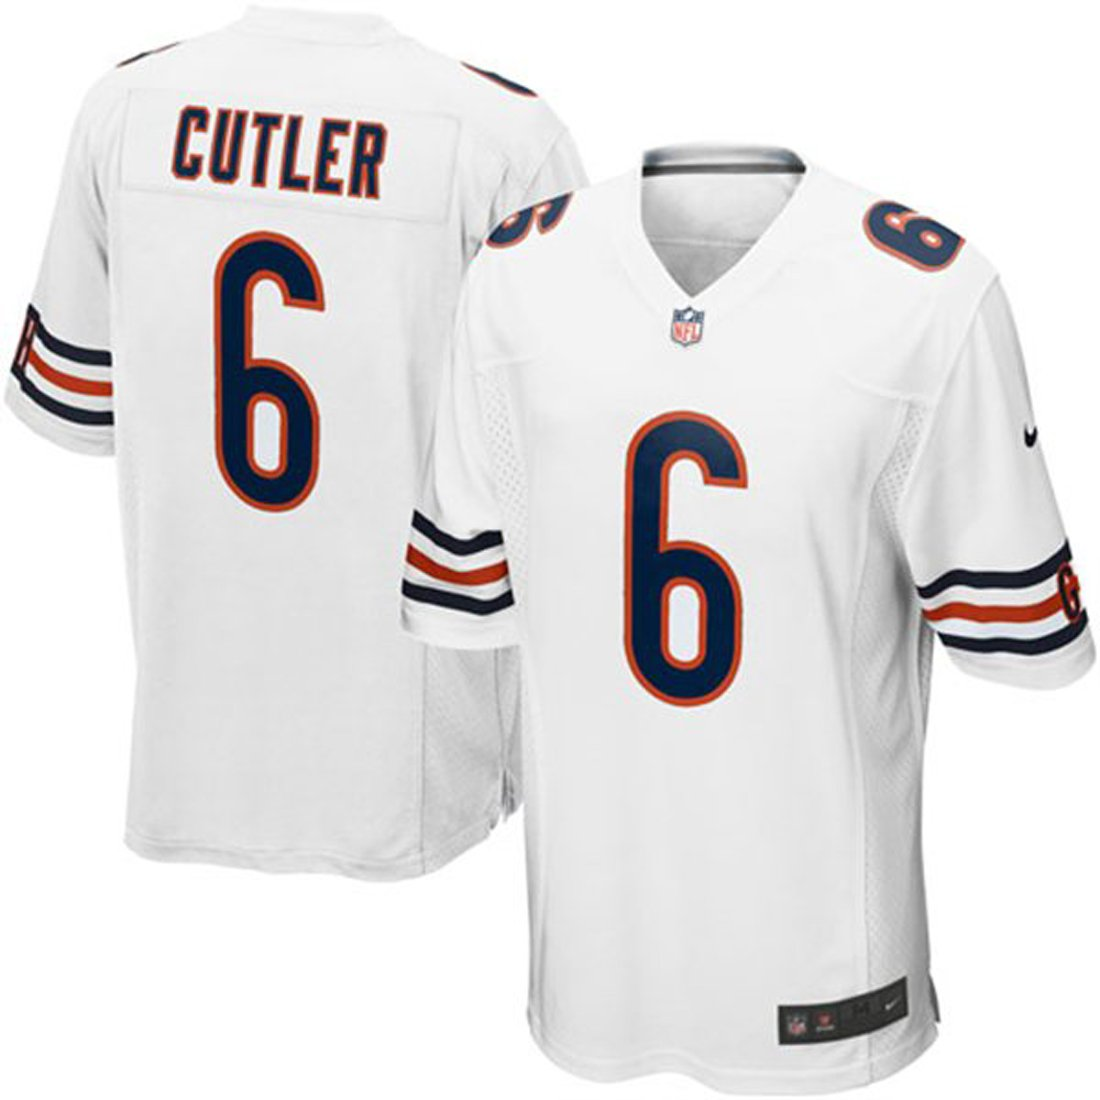 Amazon.com : Chicago Bears Jay Cutler #6 NFL Big Boys Youth Game Jersey,  White (X-Large (18-20)) : Sports & Outdoors